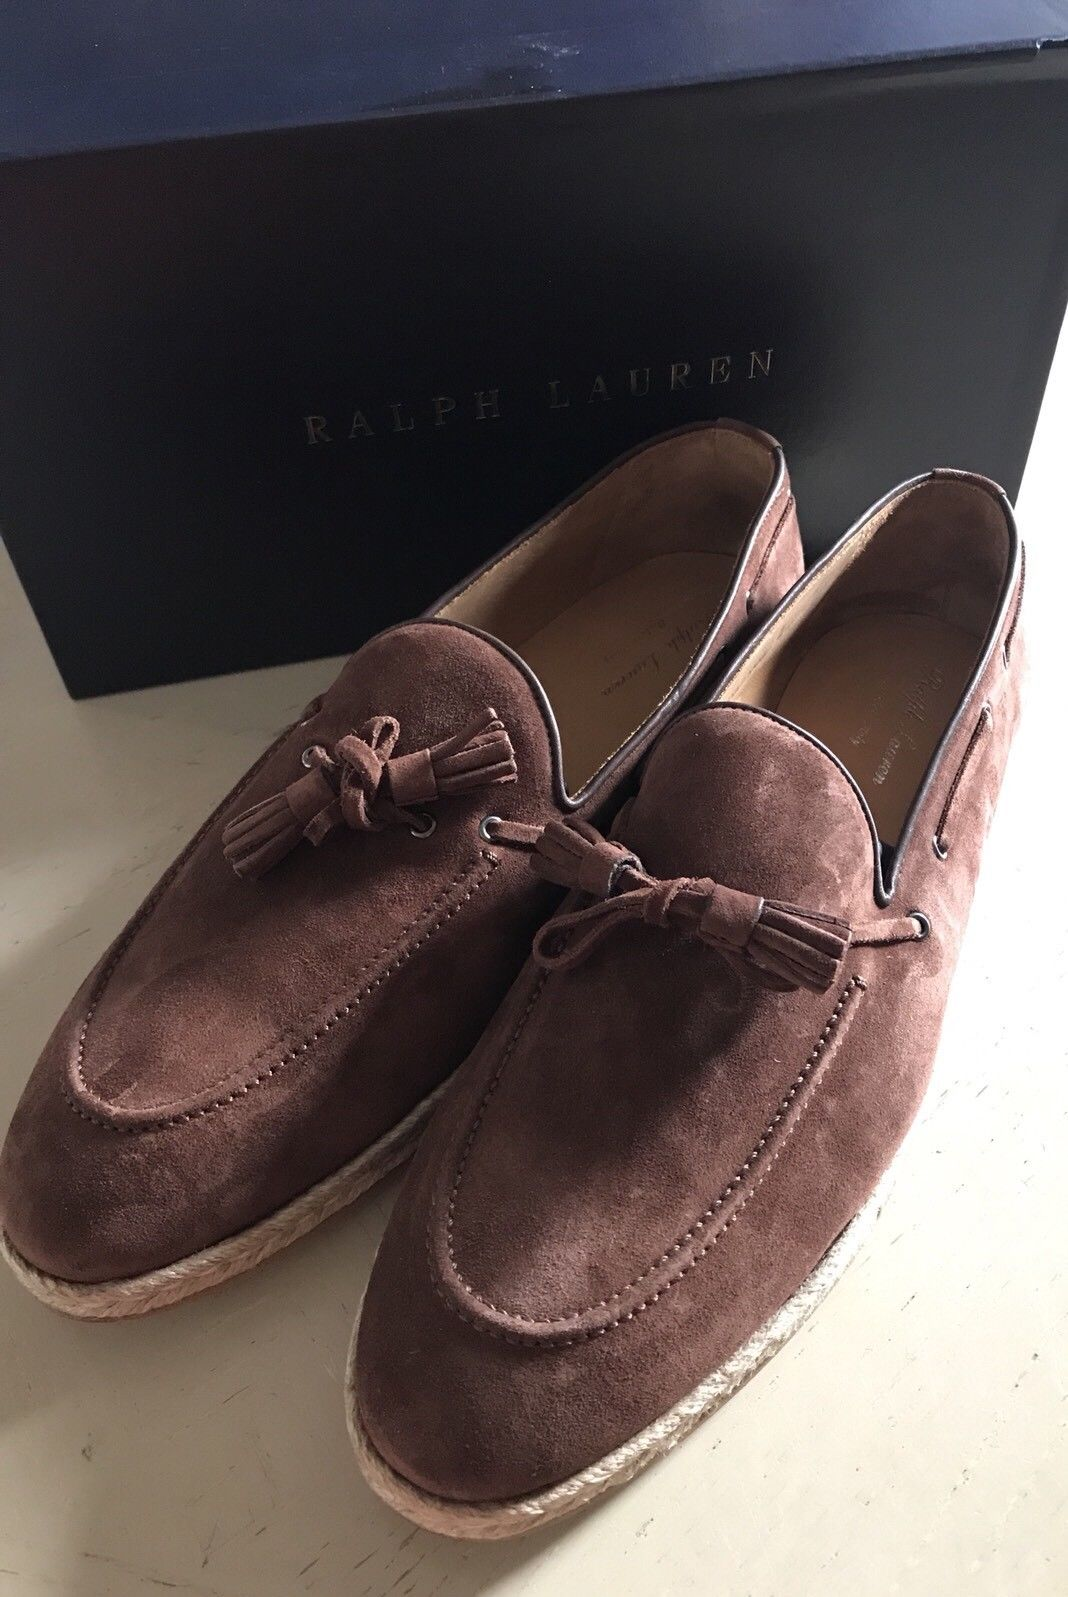 New $495 Men's Ralph Lauren Purple Label Calf Suede Loafers Shoes Brown 11 US - BAYSUPERSTORE